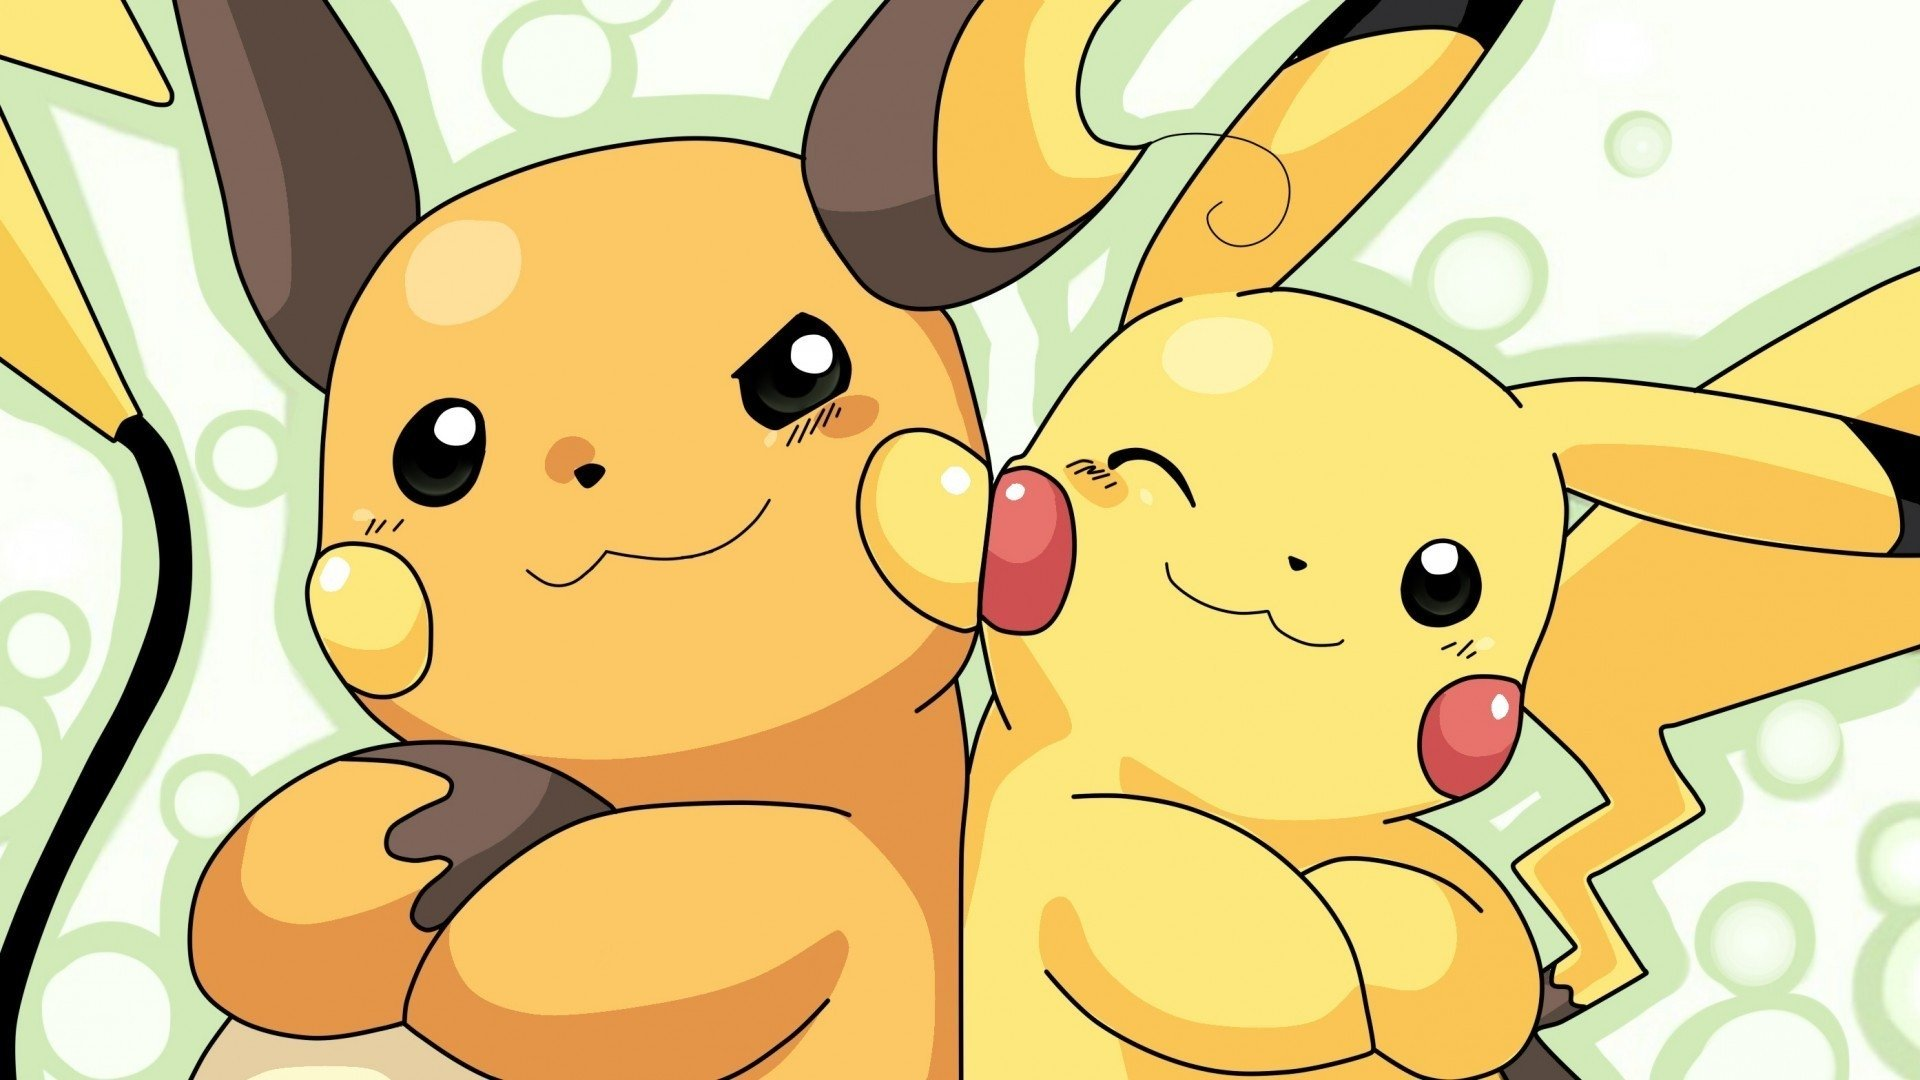 Anime - Pokémon  Pikachu Raichu (Pokémon) Anime Video Game Wallpaper